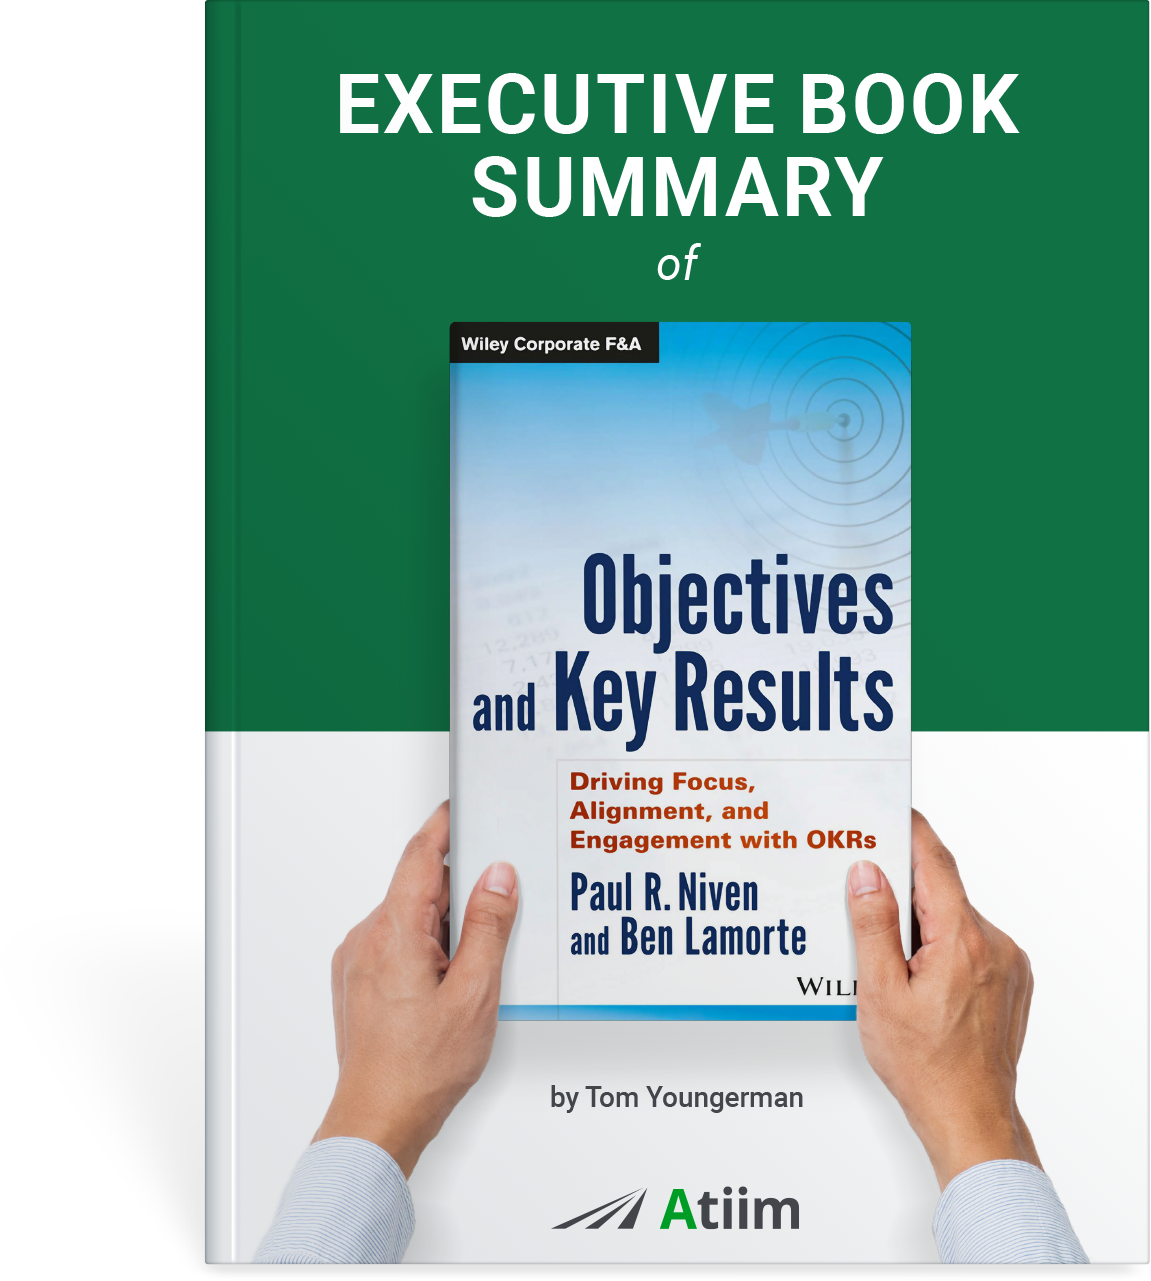 executive book summary  objectives and key results  by